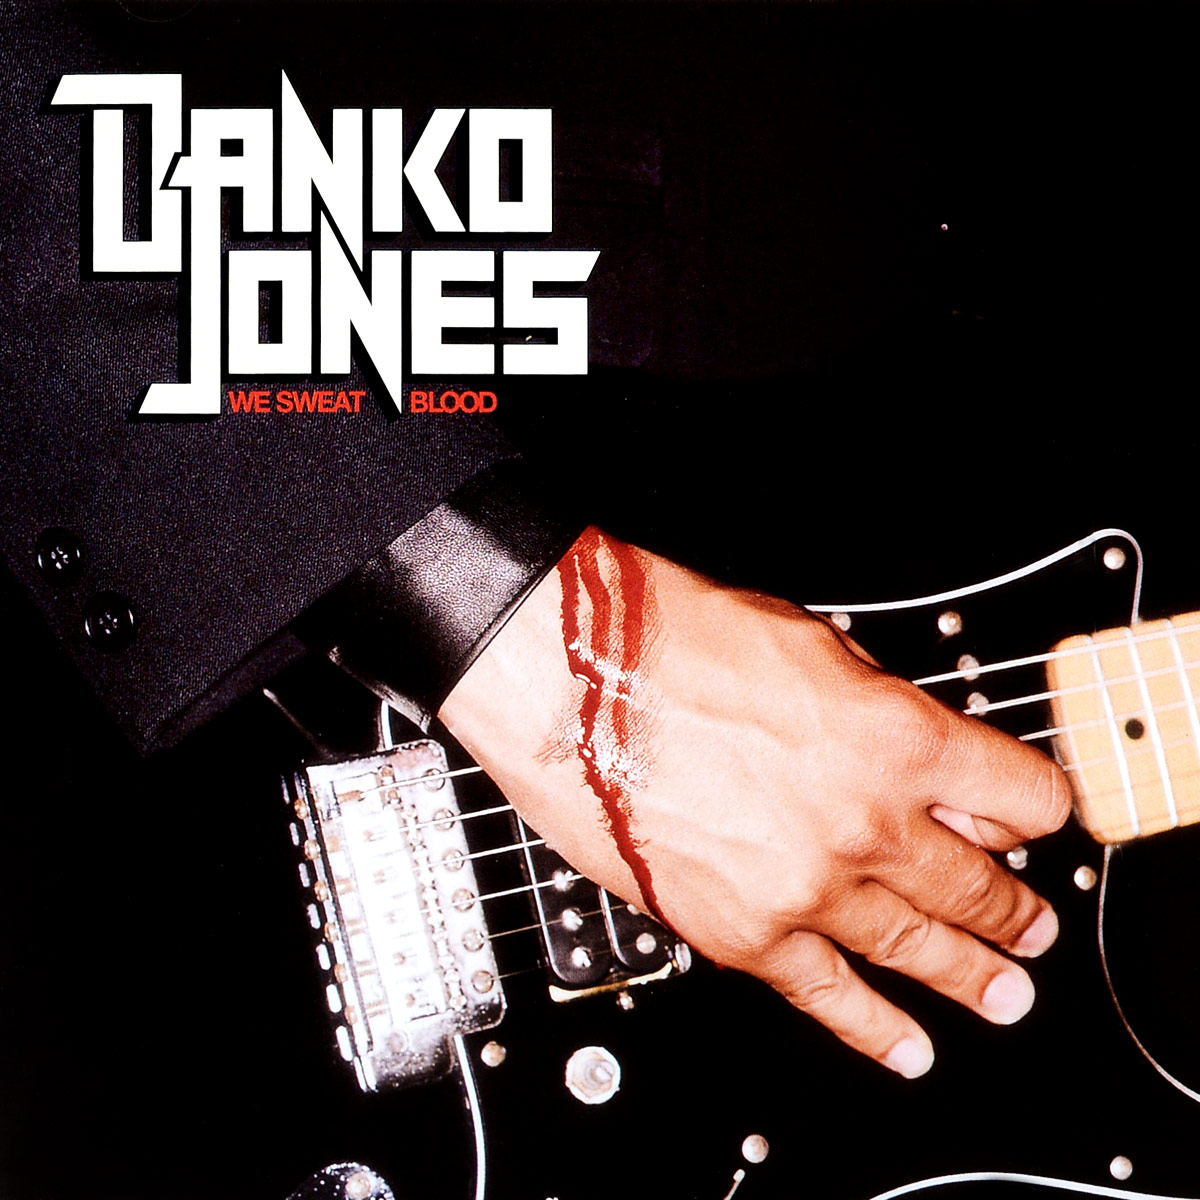 цена на Danko Jones Danko Jones. We Sweat Blood